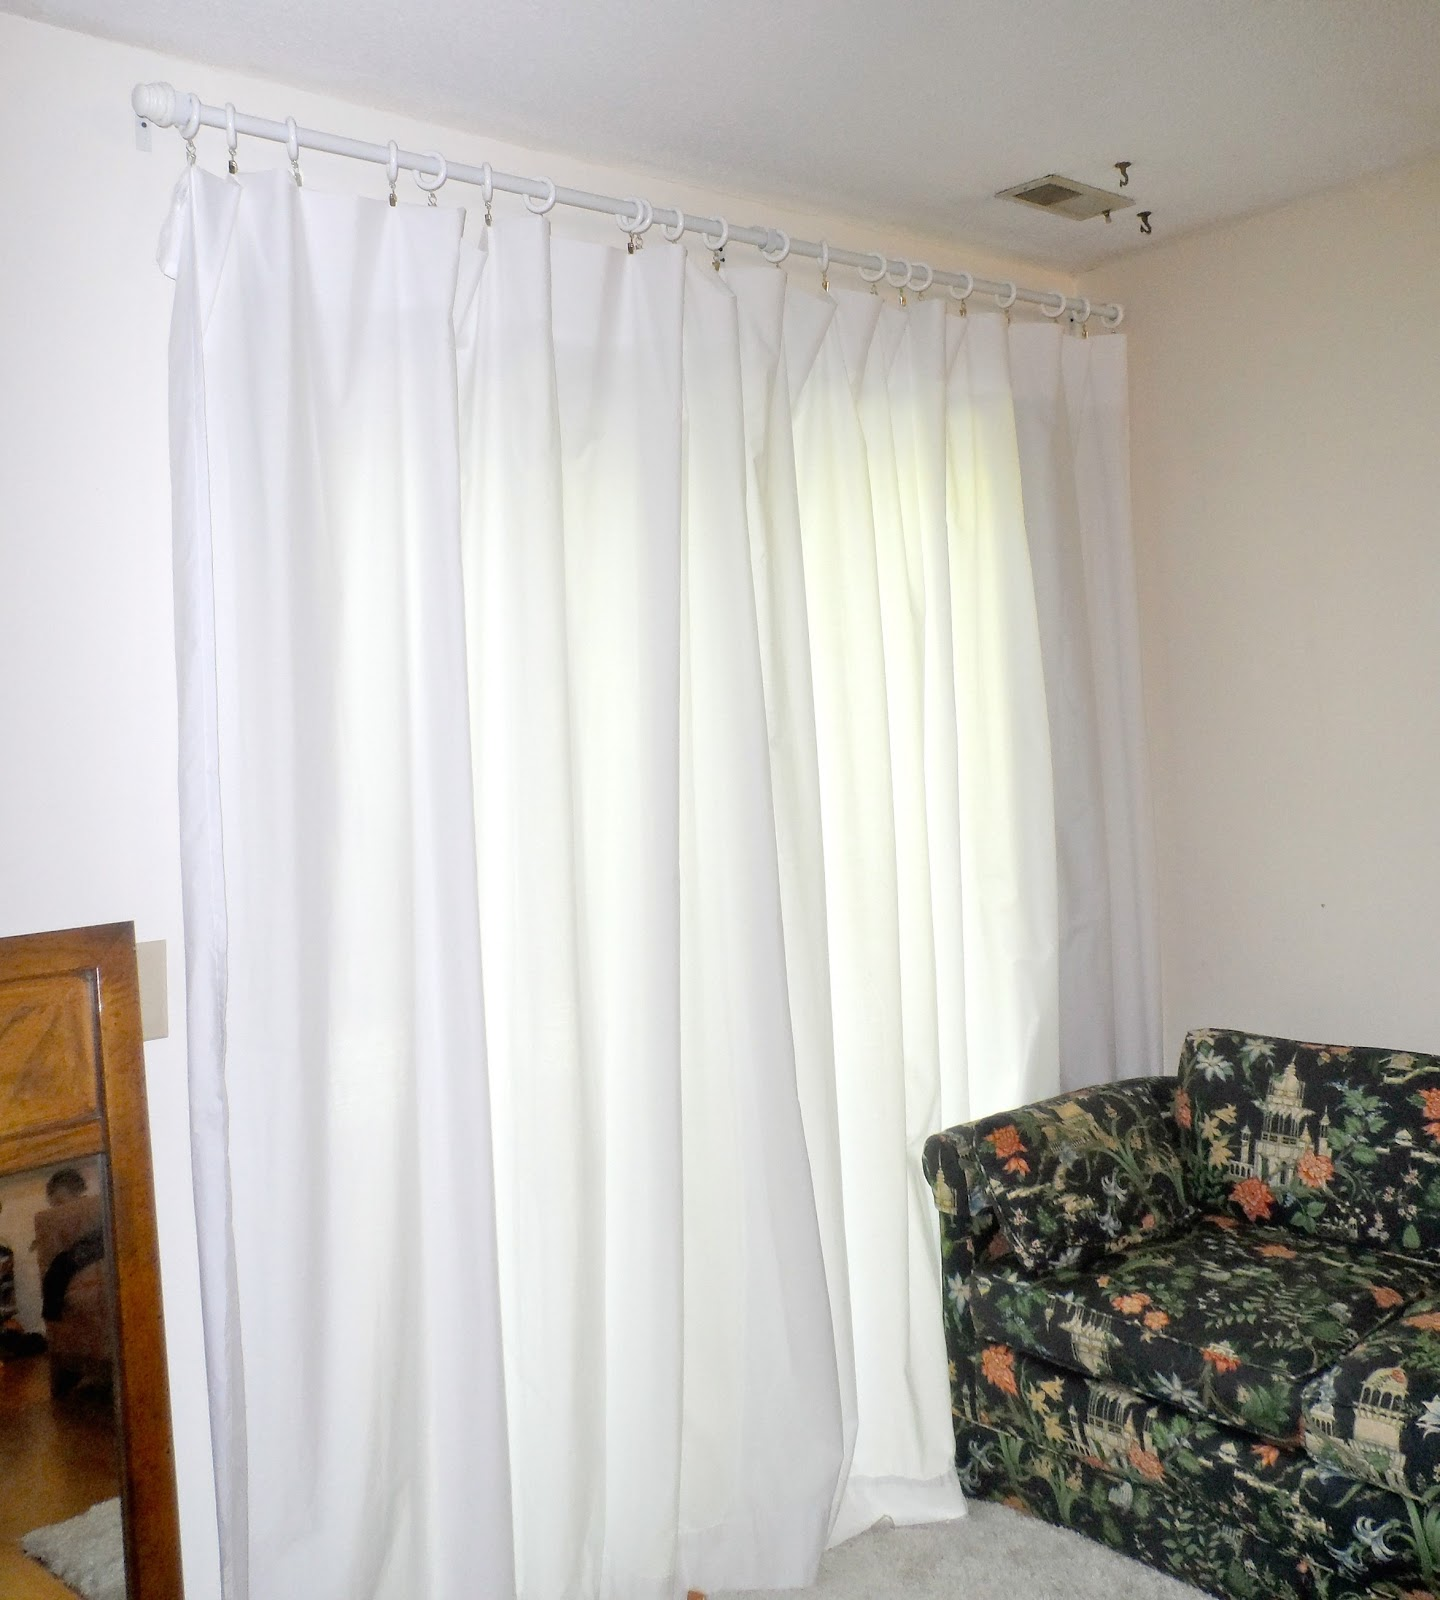 Diy Curtains From Sheets The curtain rod was a total